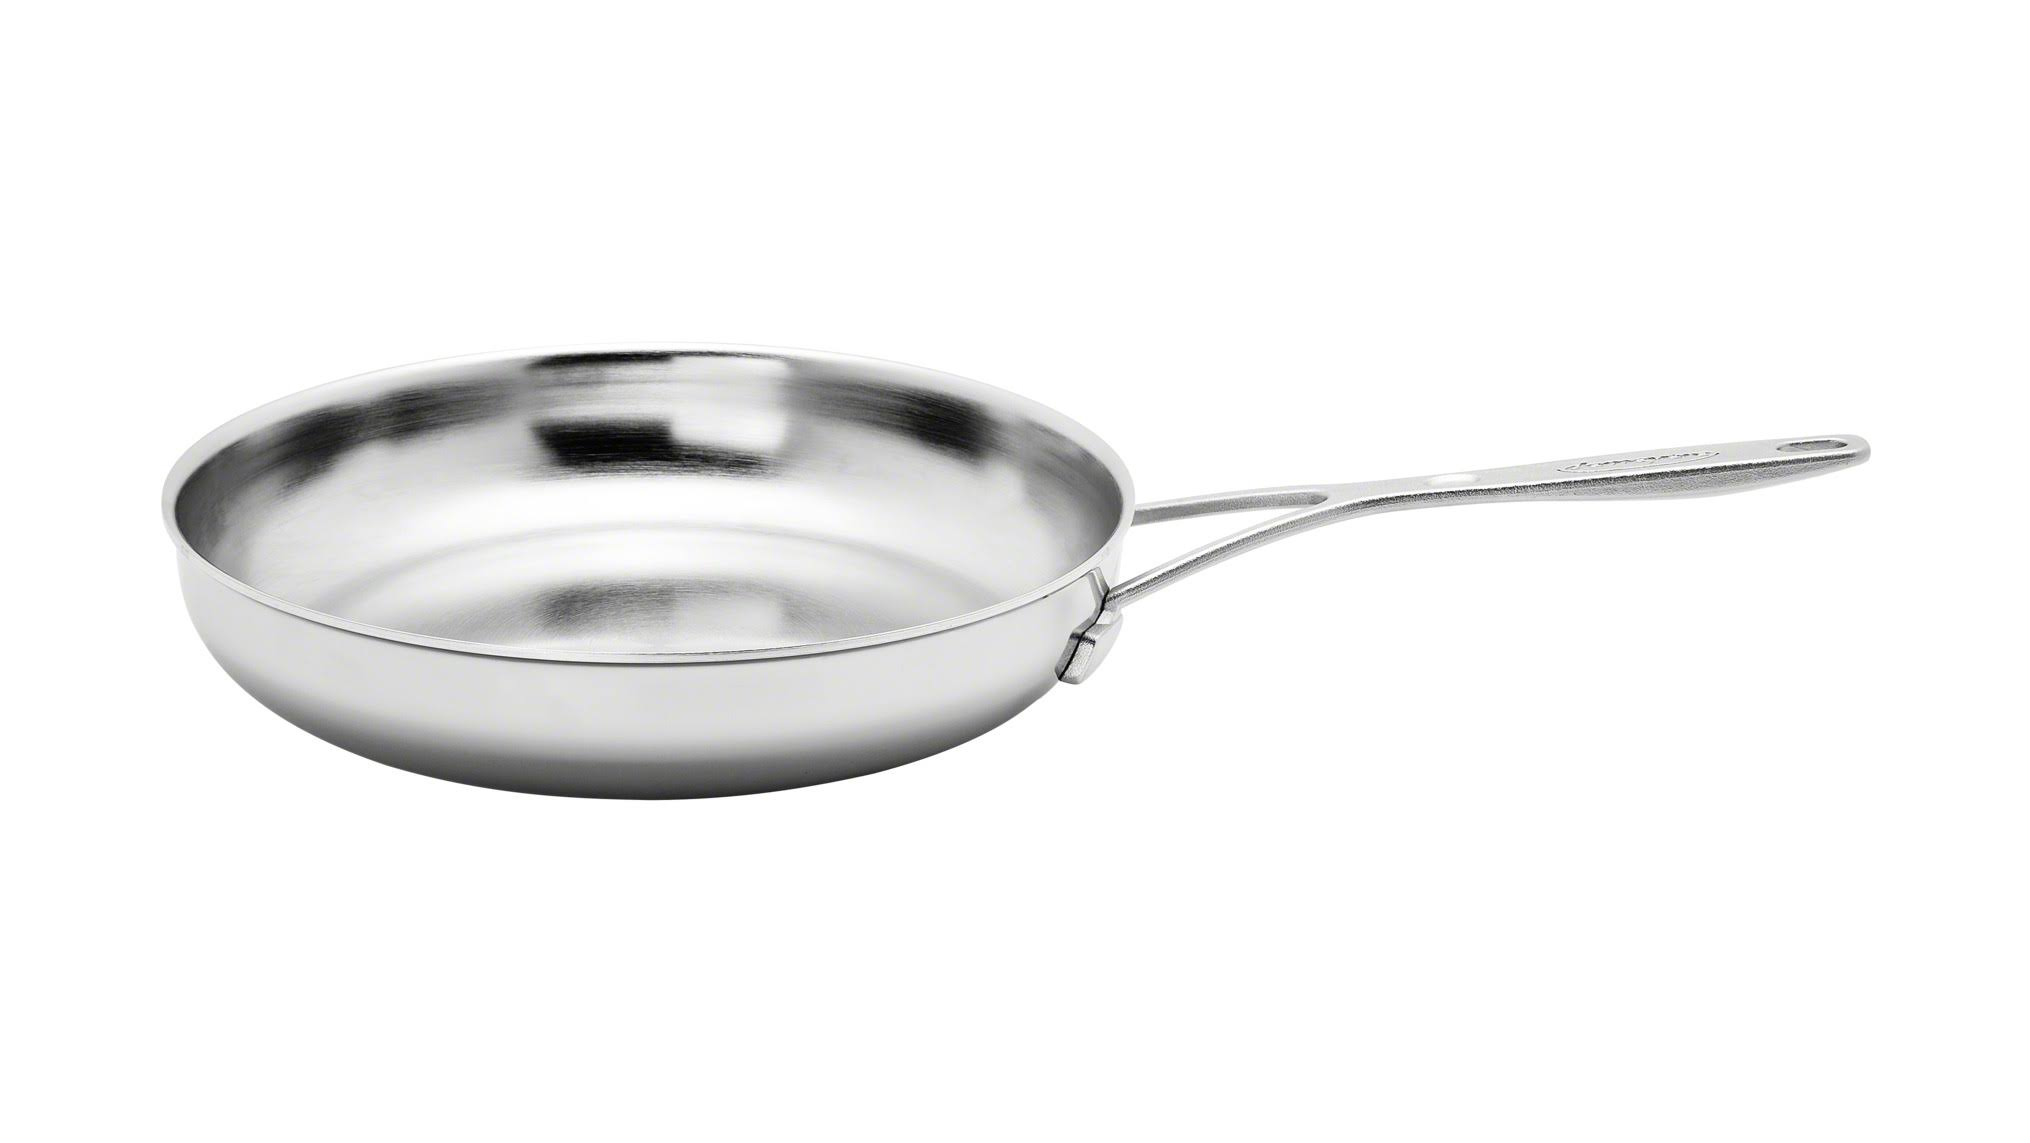 Demeyere Industry Stainless Steel Fry Pan 9.5 inch